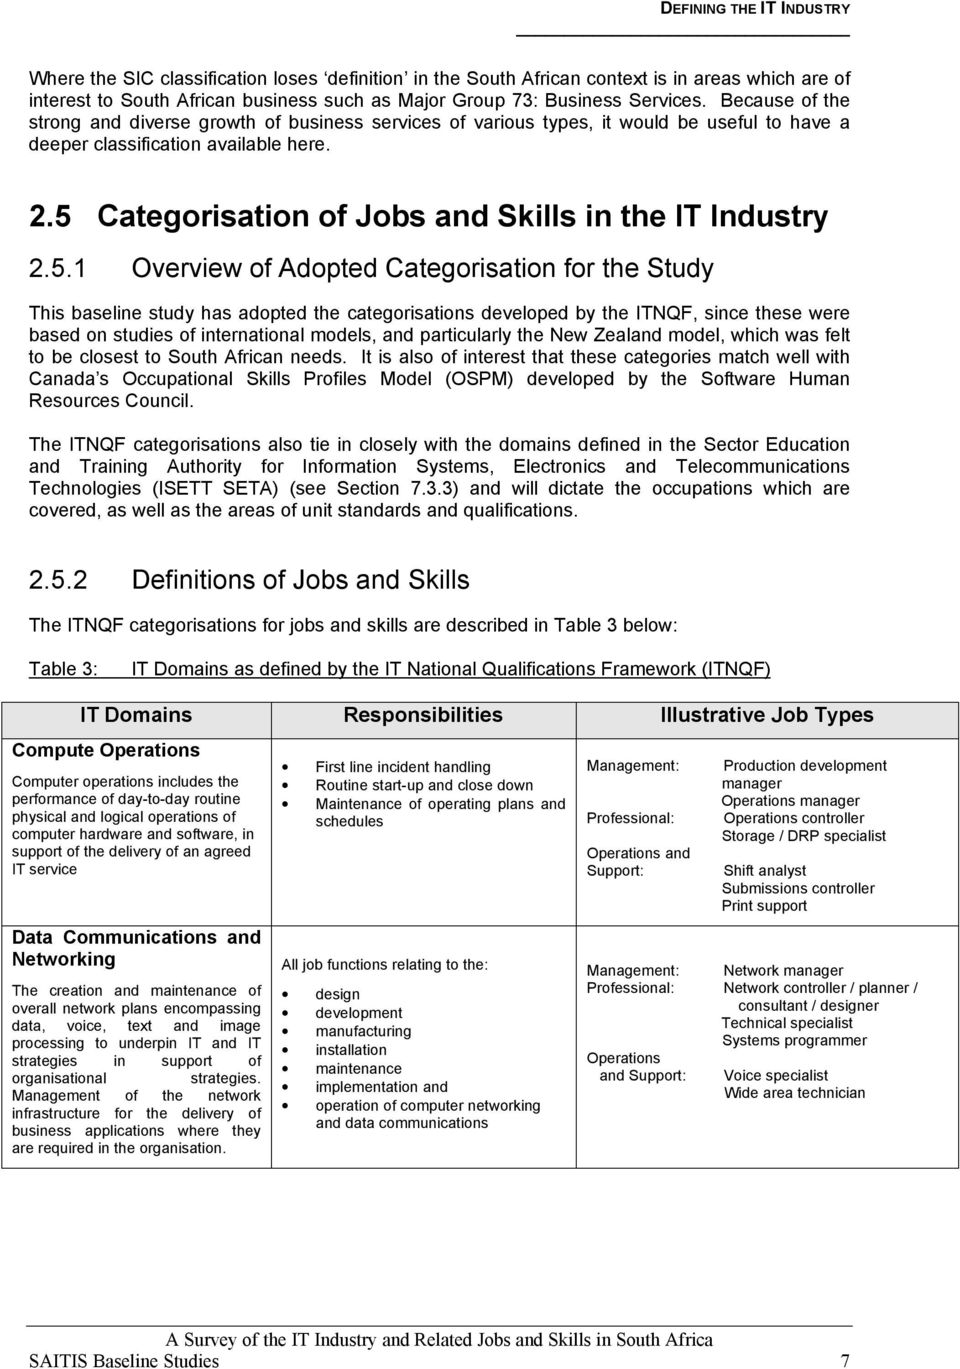 5 Categorisation of Jobs and Skills in the IT Industry 2.5.1 Overview of Adopted Categorisation for the Study This baseline study has adopted the categorisations developed by the ITNQF, since these